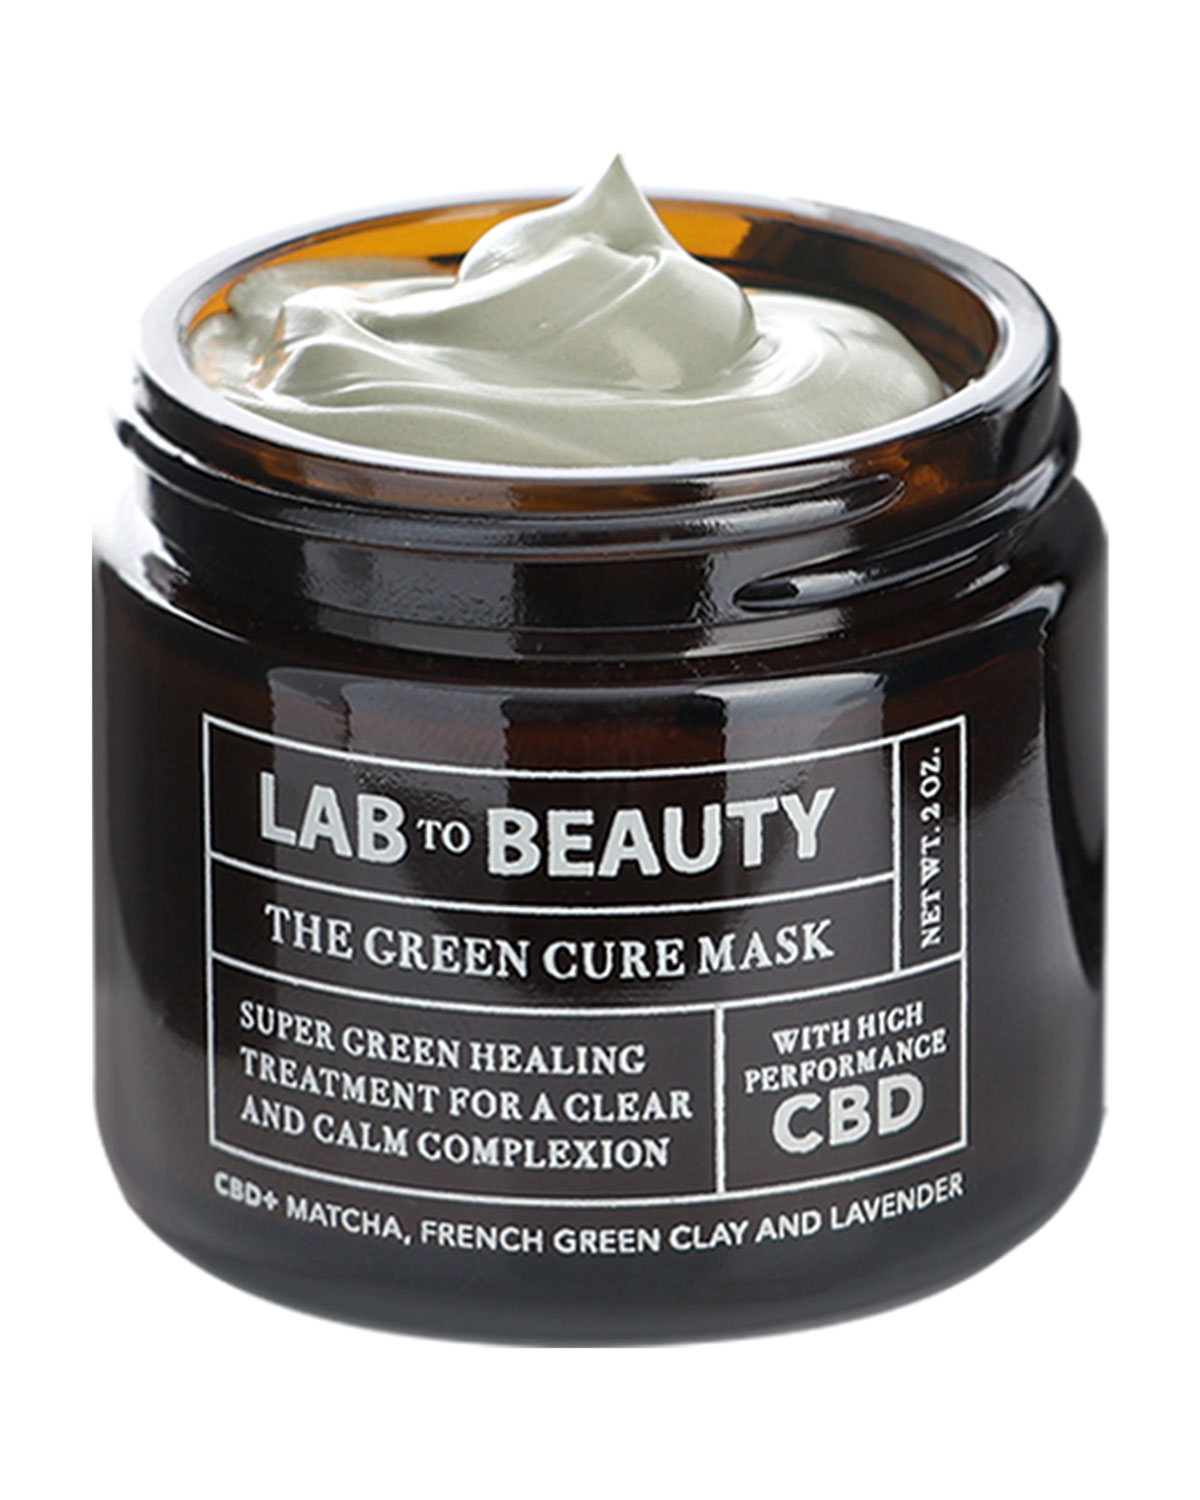 2 oz. The Green Cure Mask